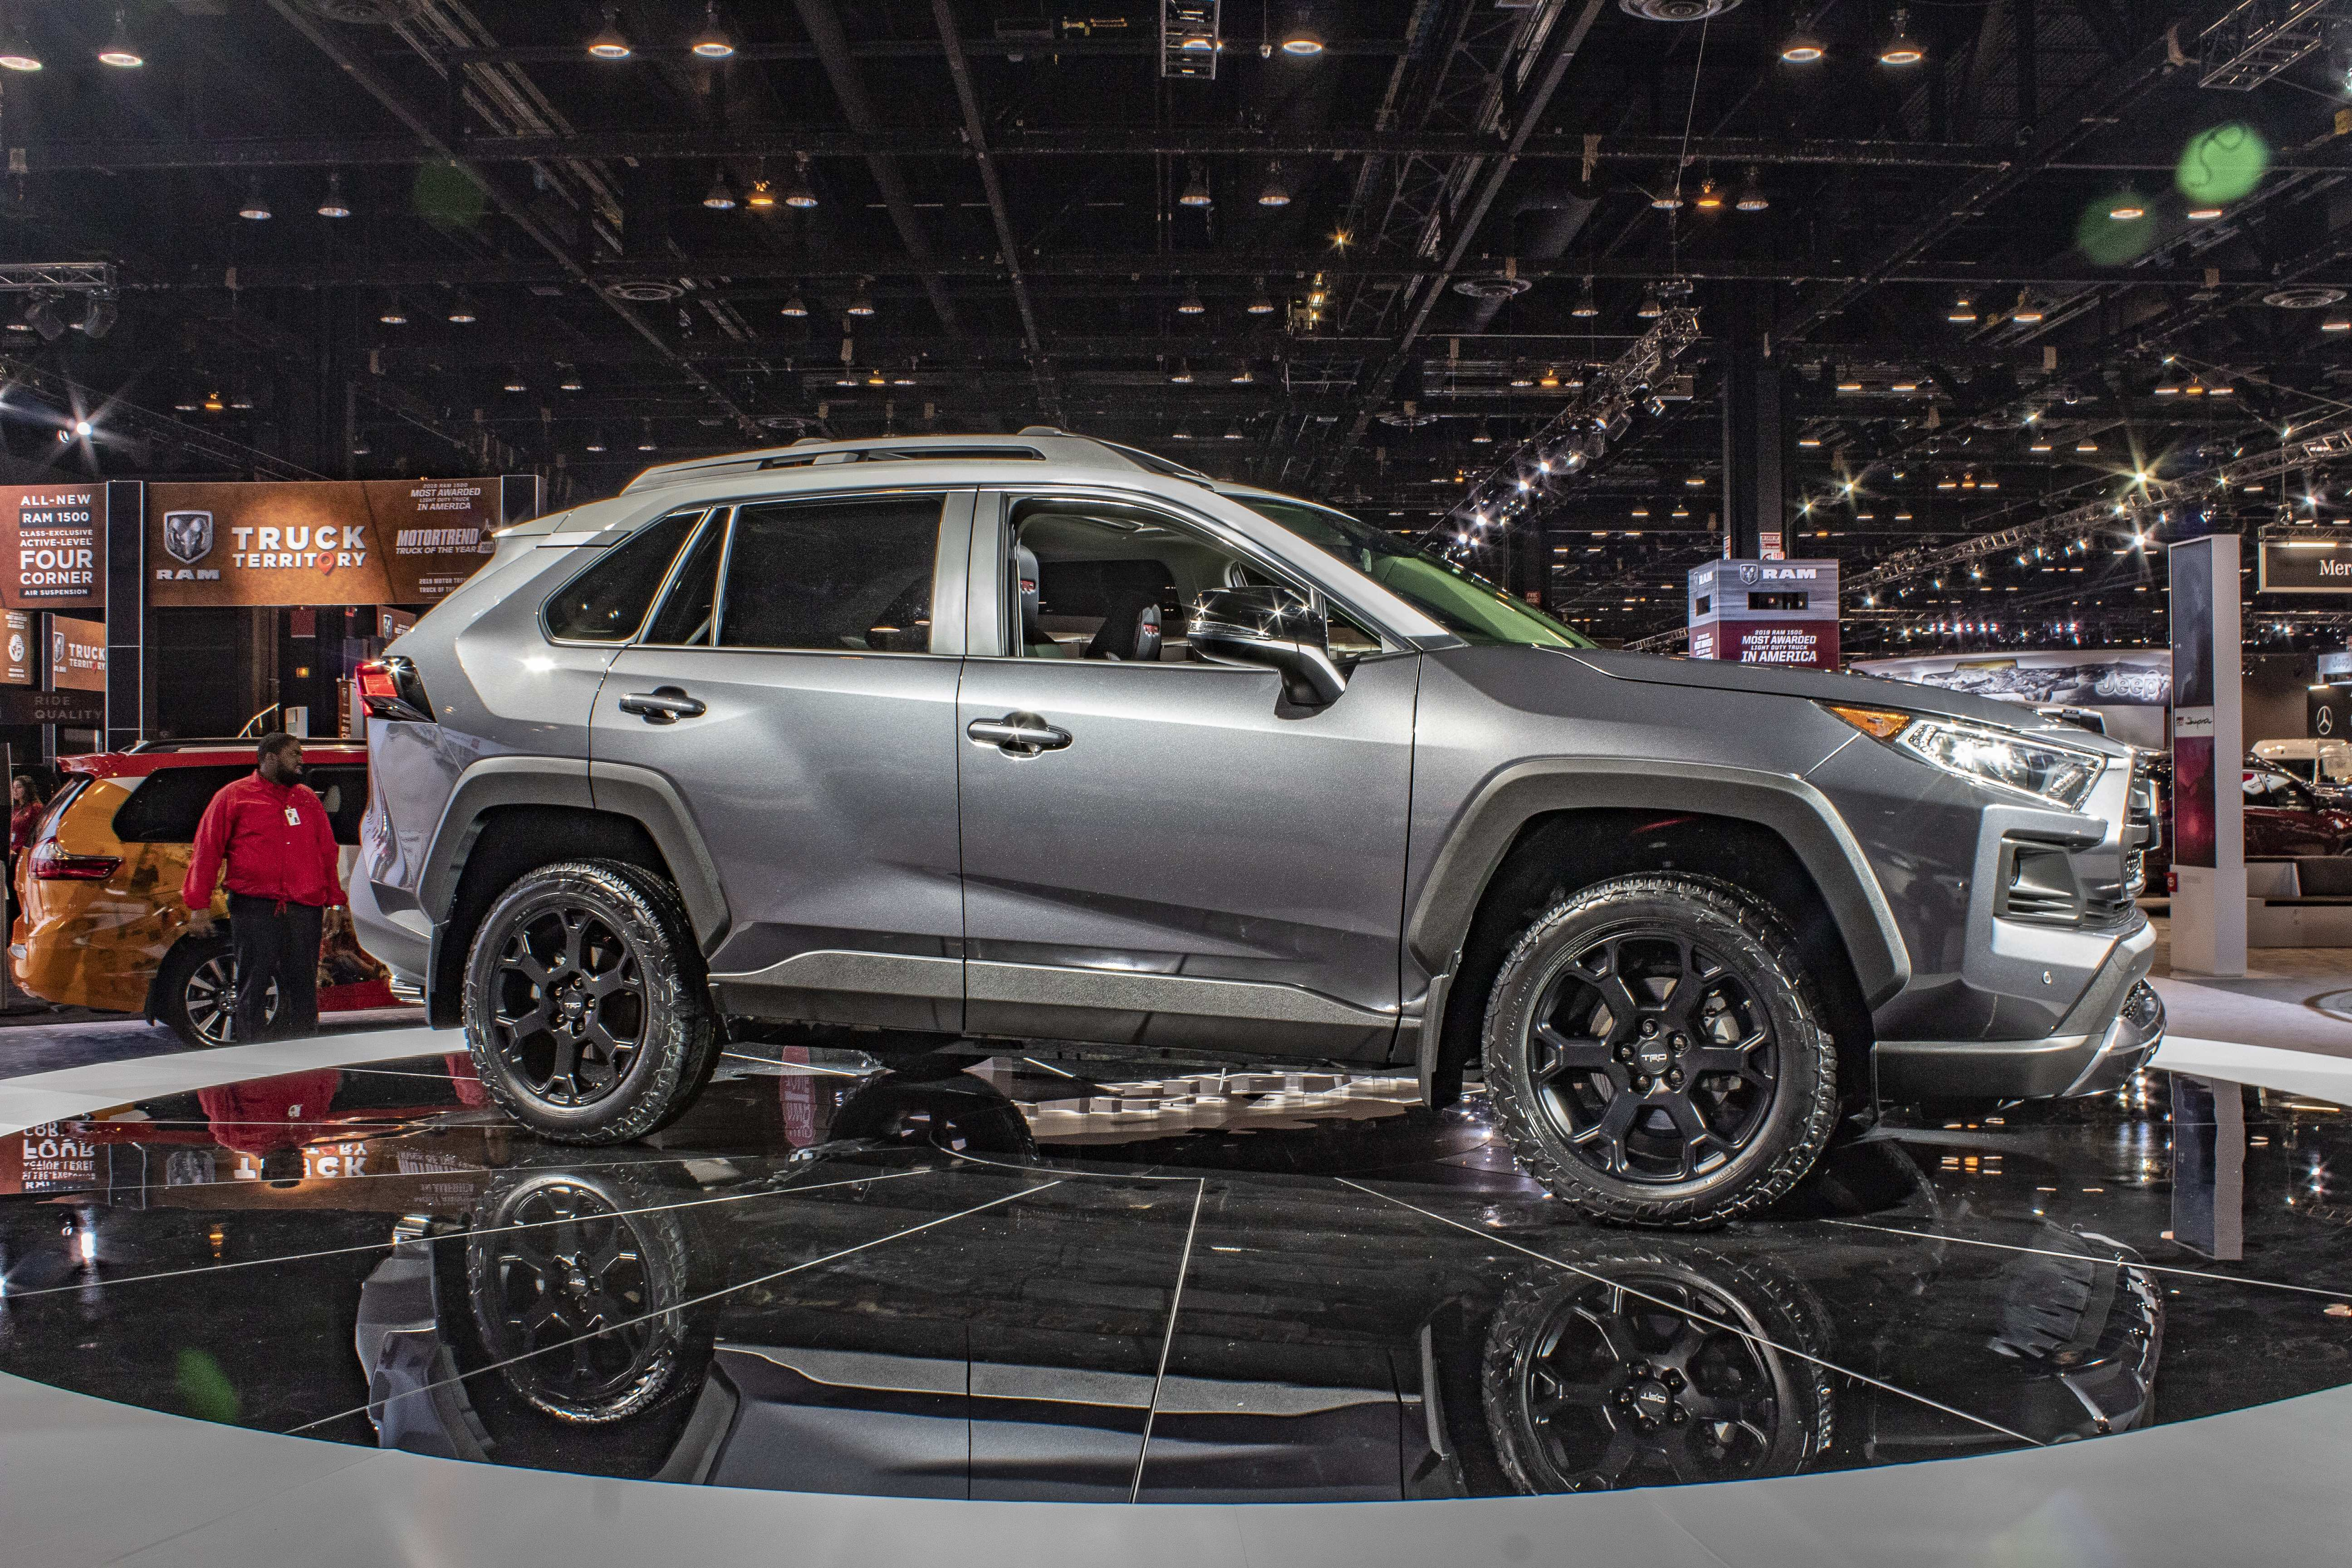 39 Great Toyota Jeep 2020 Spesification for Toyota Jeep 2020